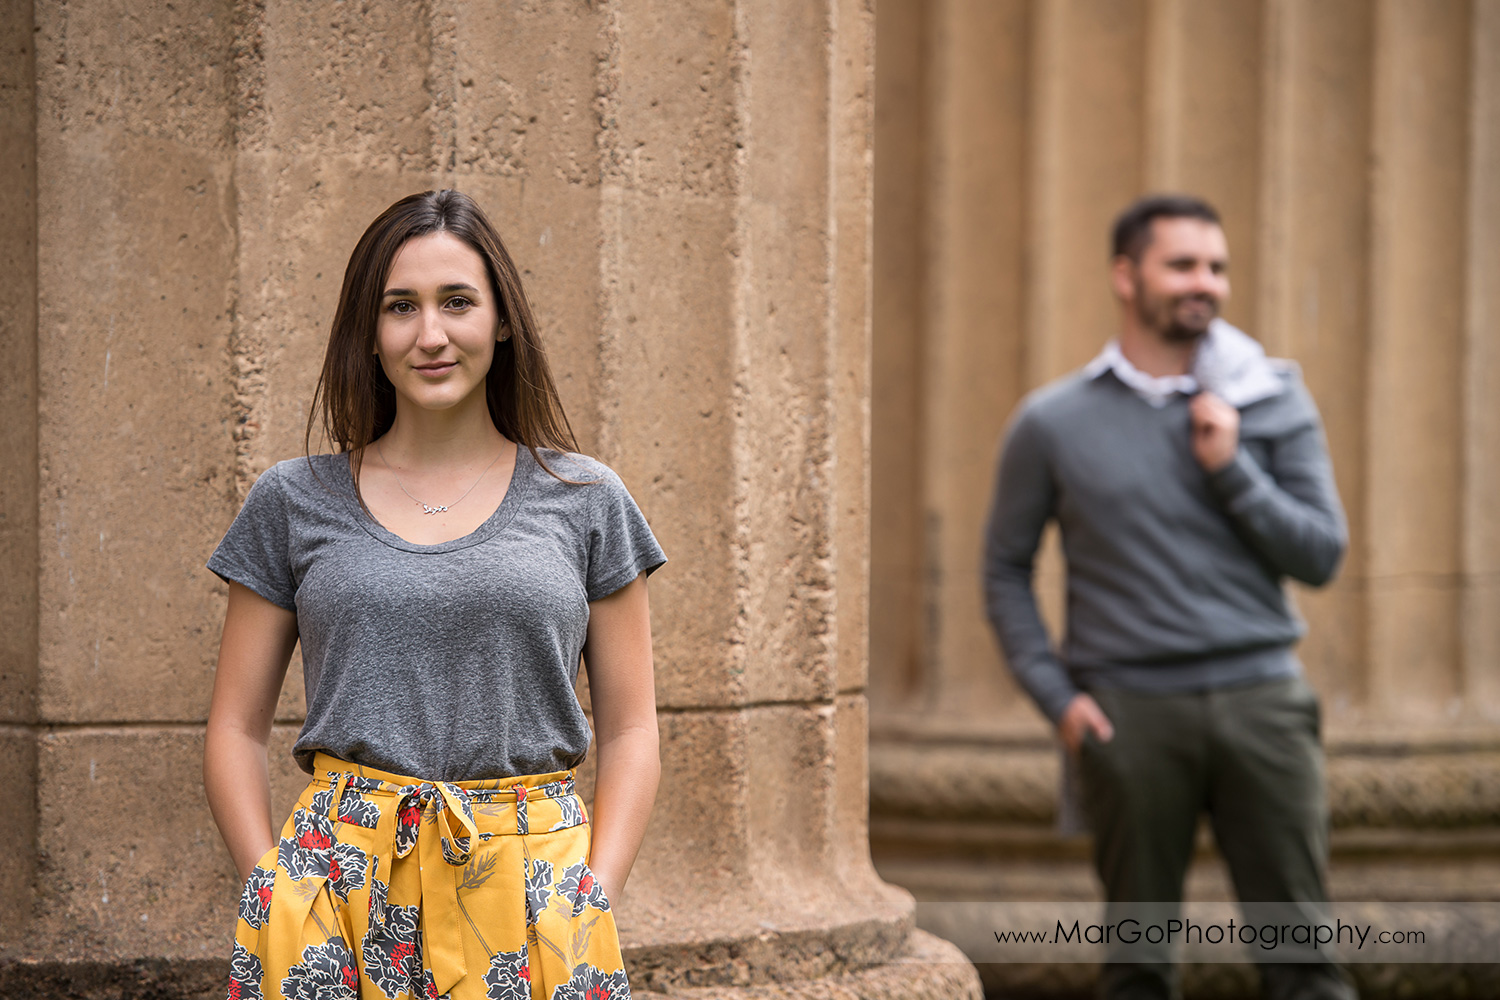 engagement session at Palace of Fine Arts in San Francisco - focus on woman